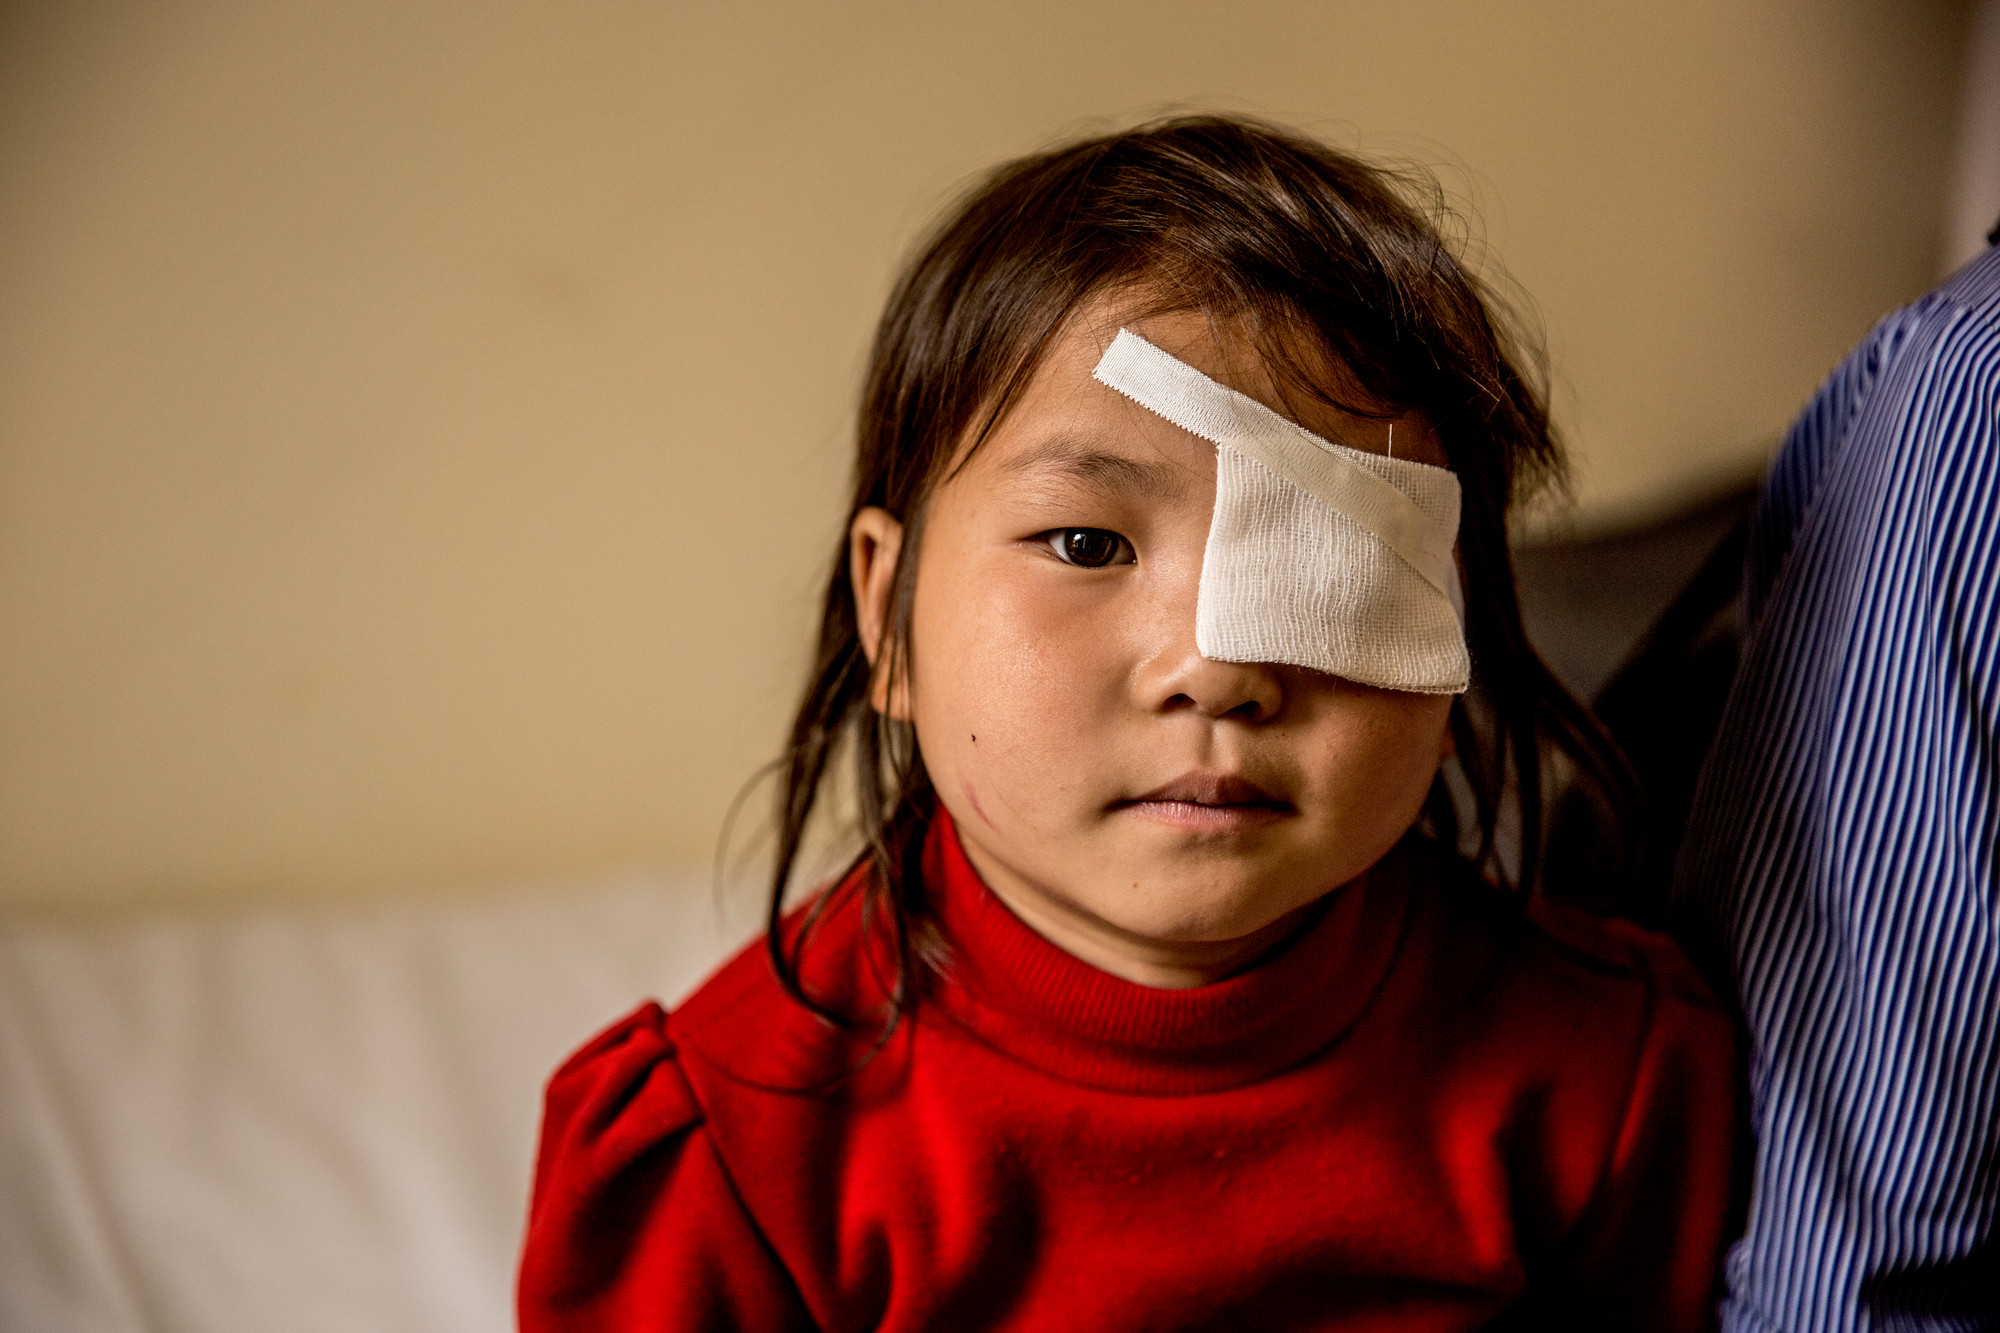 Close-up of Nhung looking to camera, with an eye patch over her left eye.